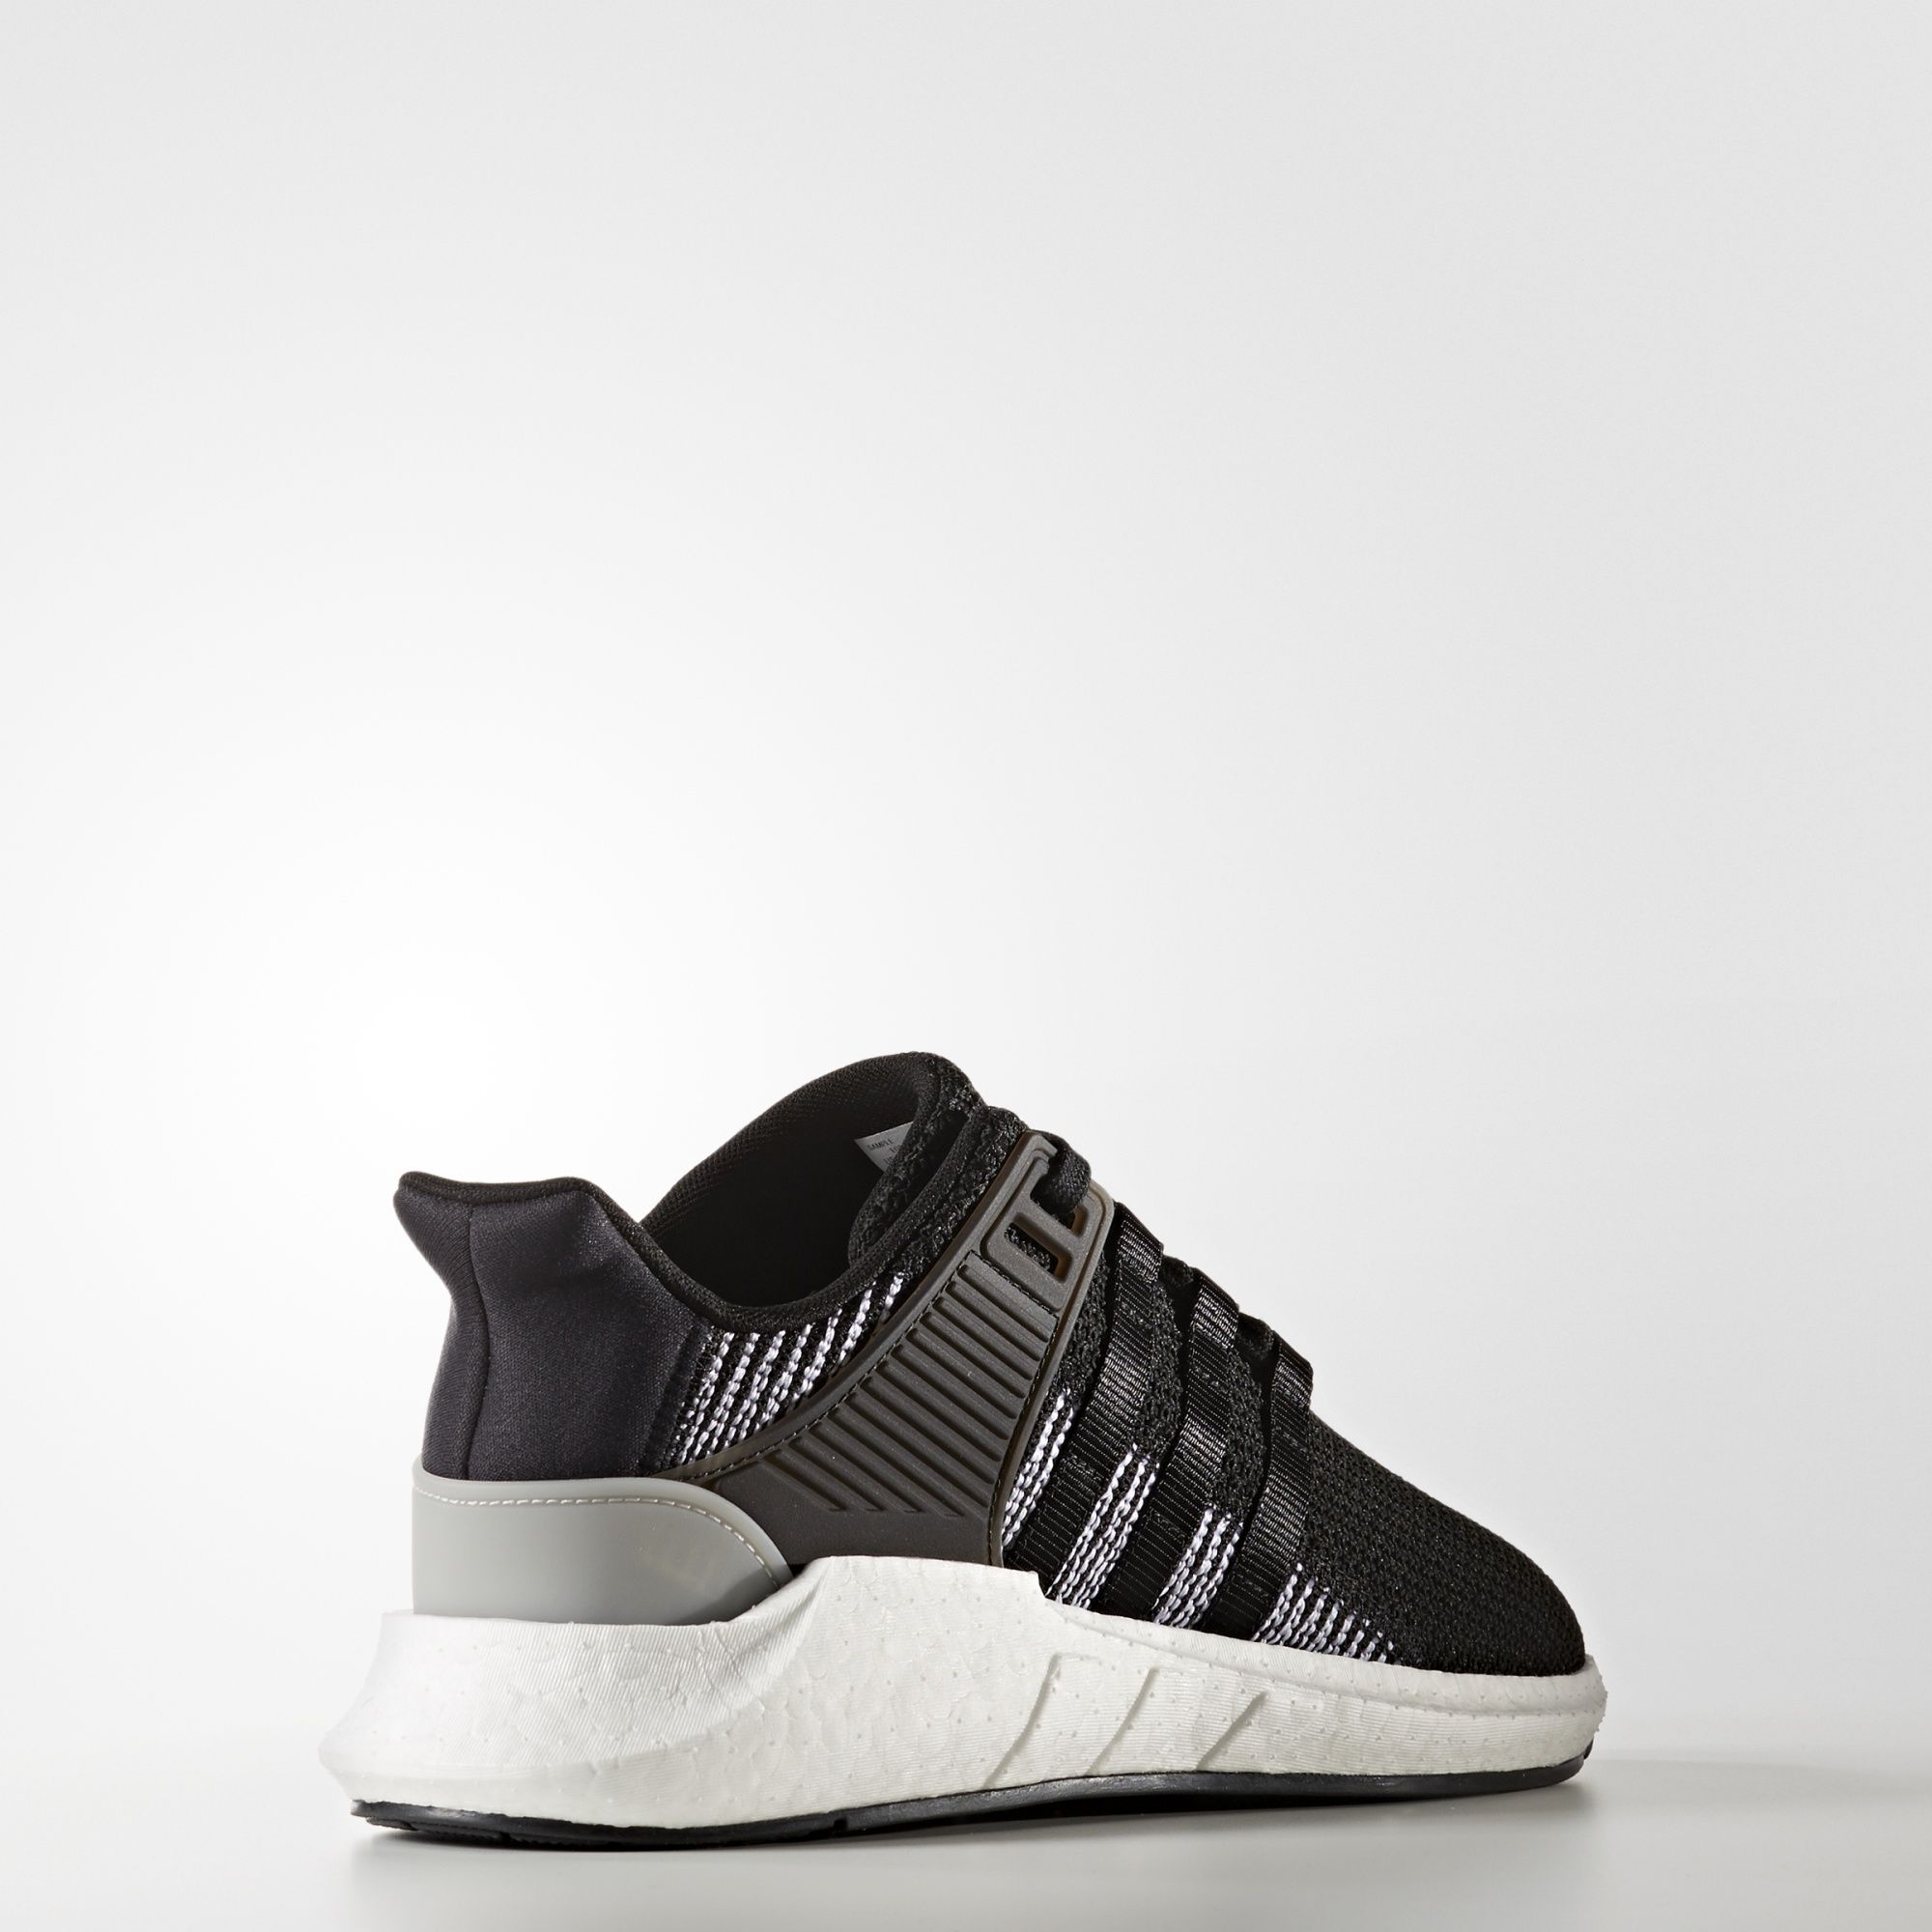 BY9509 adidas EQT Support 93 17 Black White 3